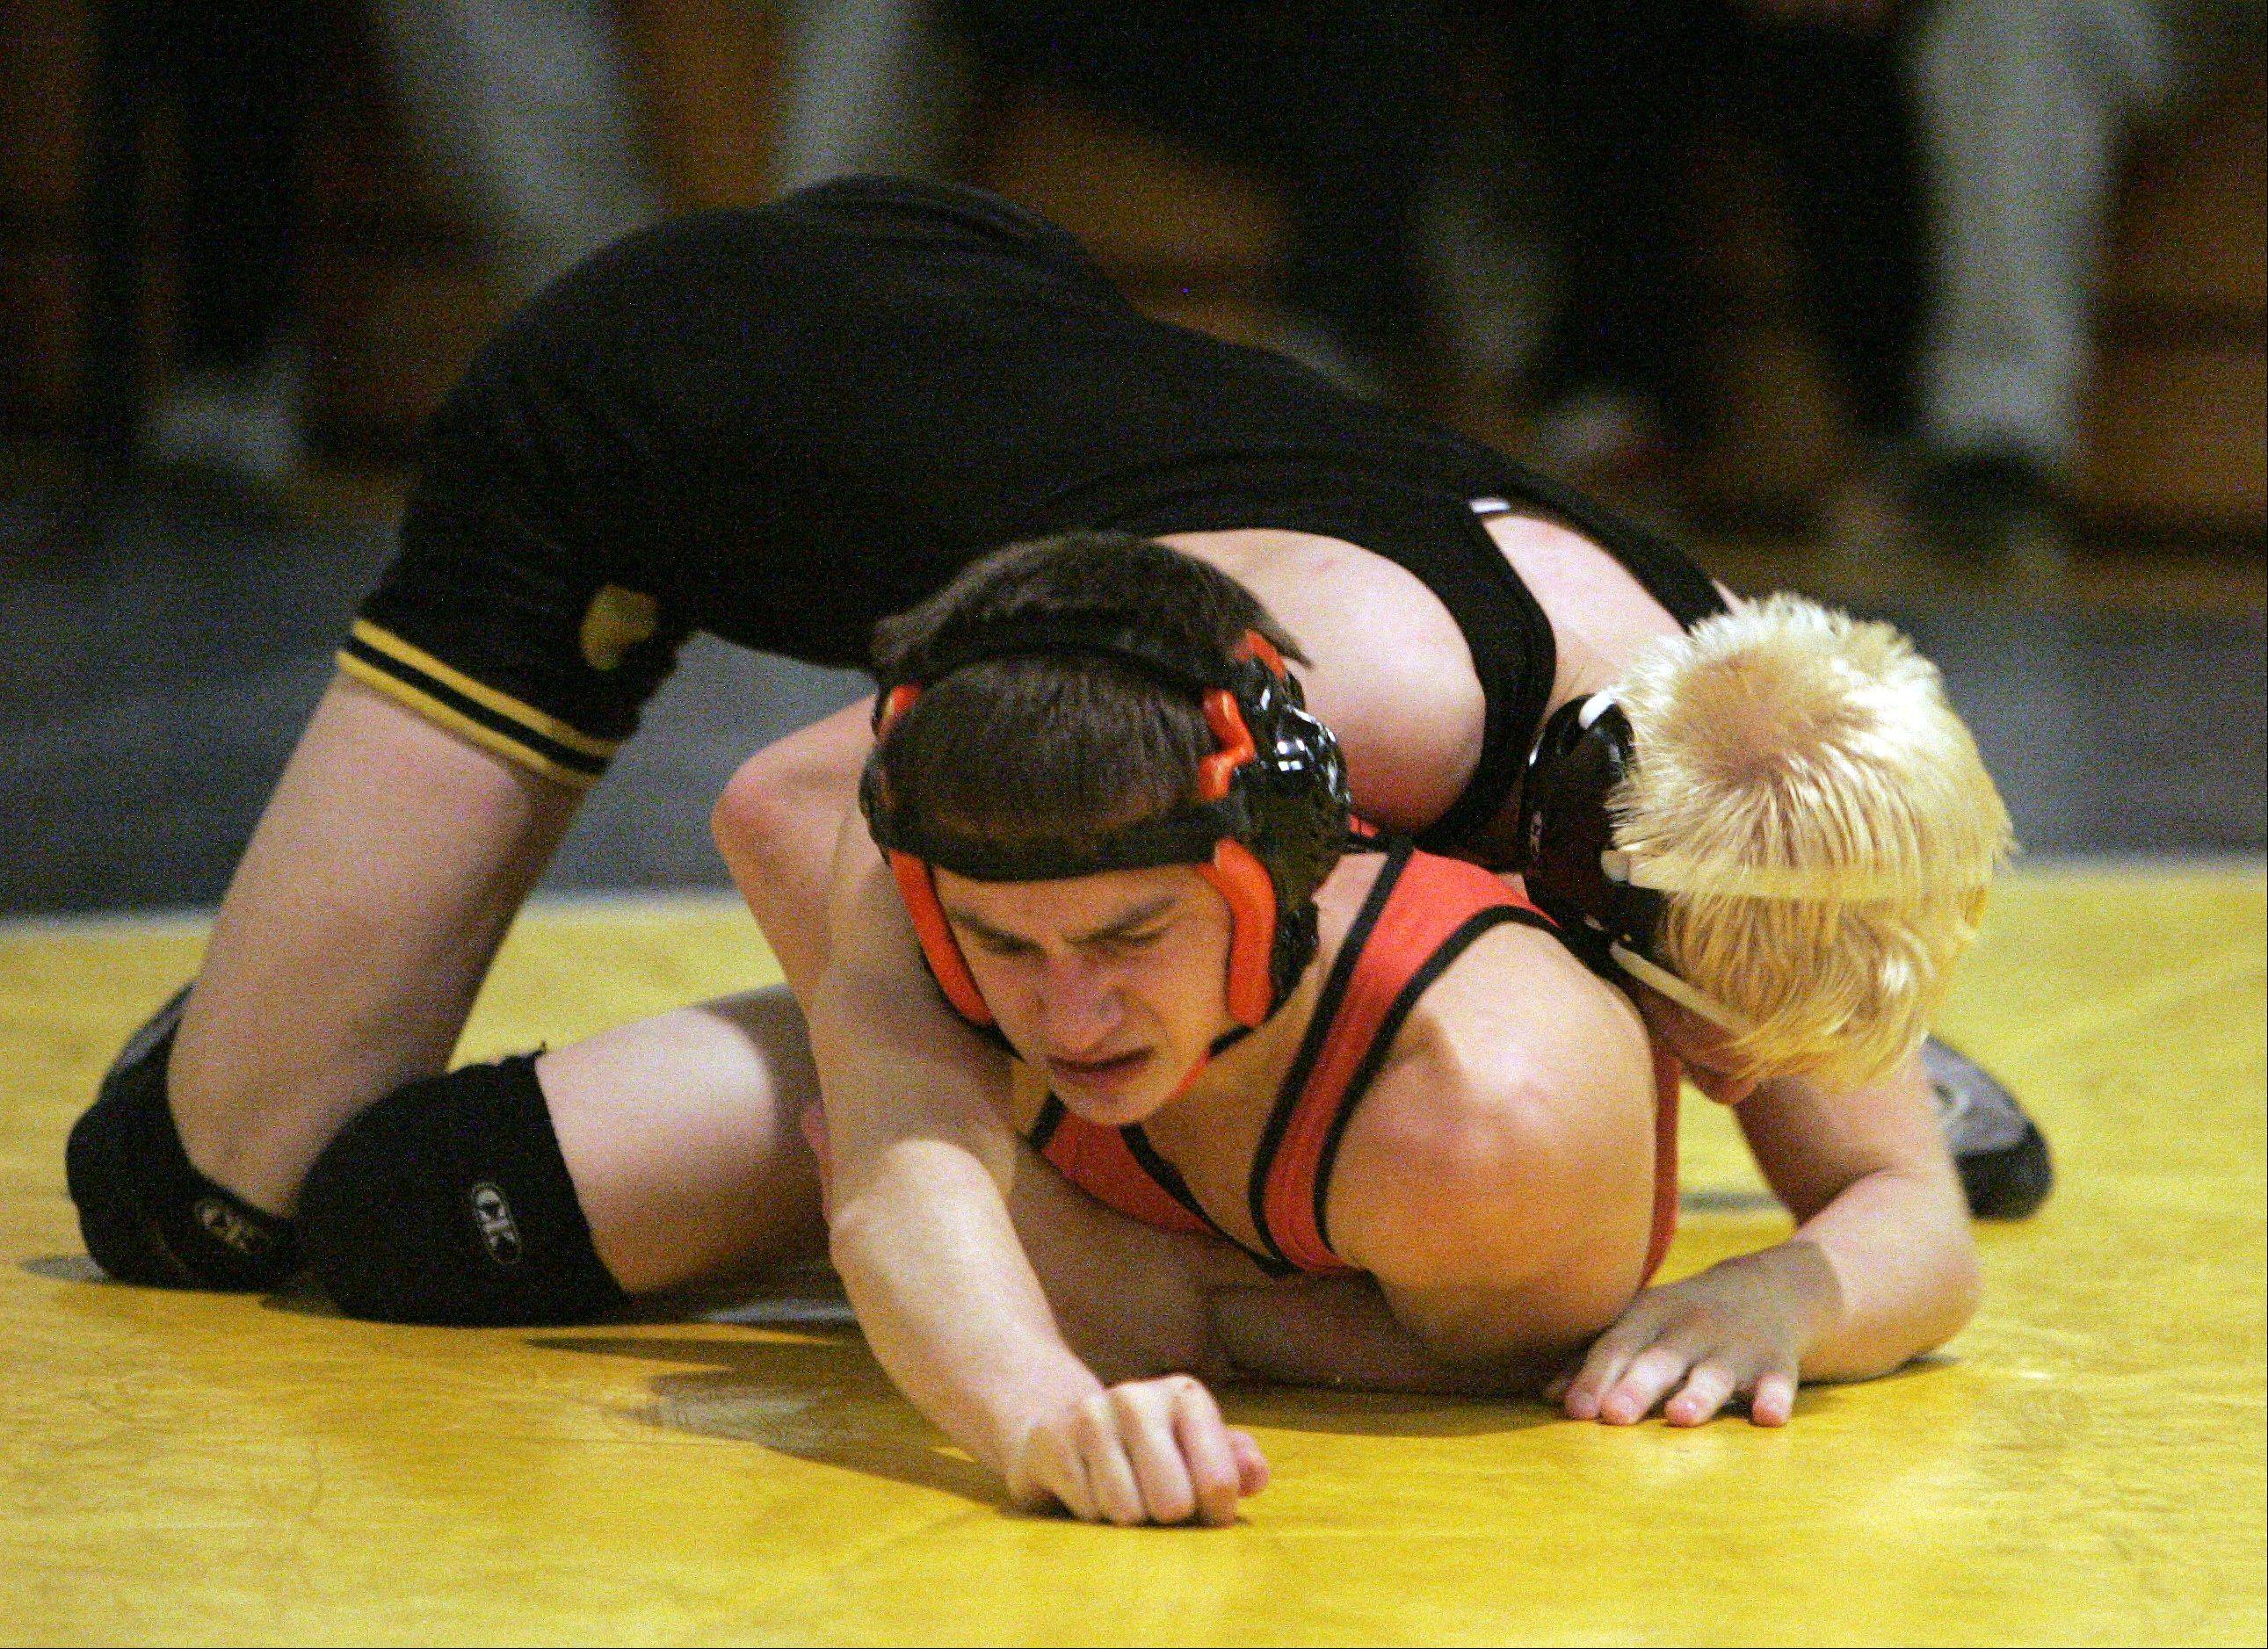 St. Charles East's Ryan Rubino takes on Glenbard North's Patrick Augustyn during the 106 pound IHSA Regional wrestling match for first place at Glenbard North Saturday February 2, 2013.